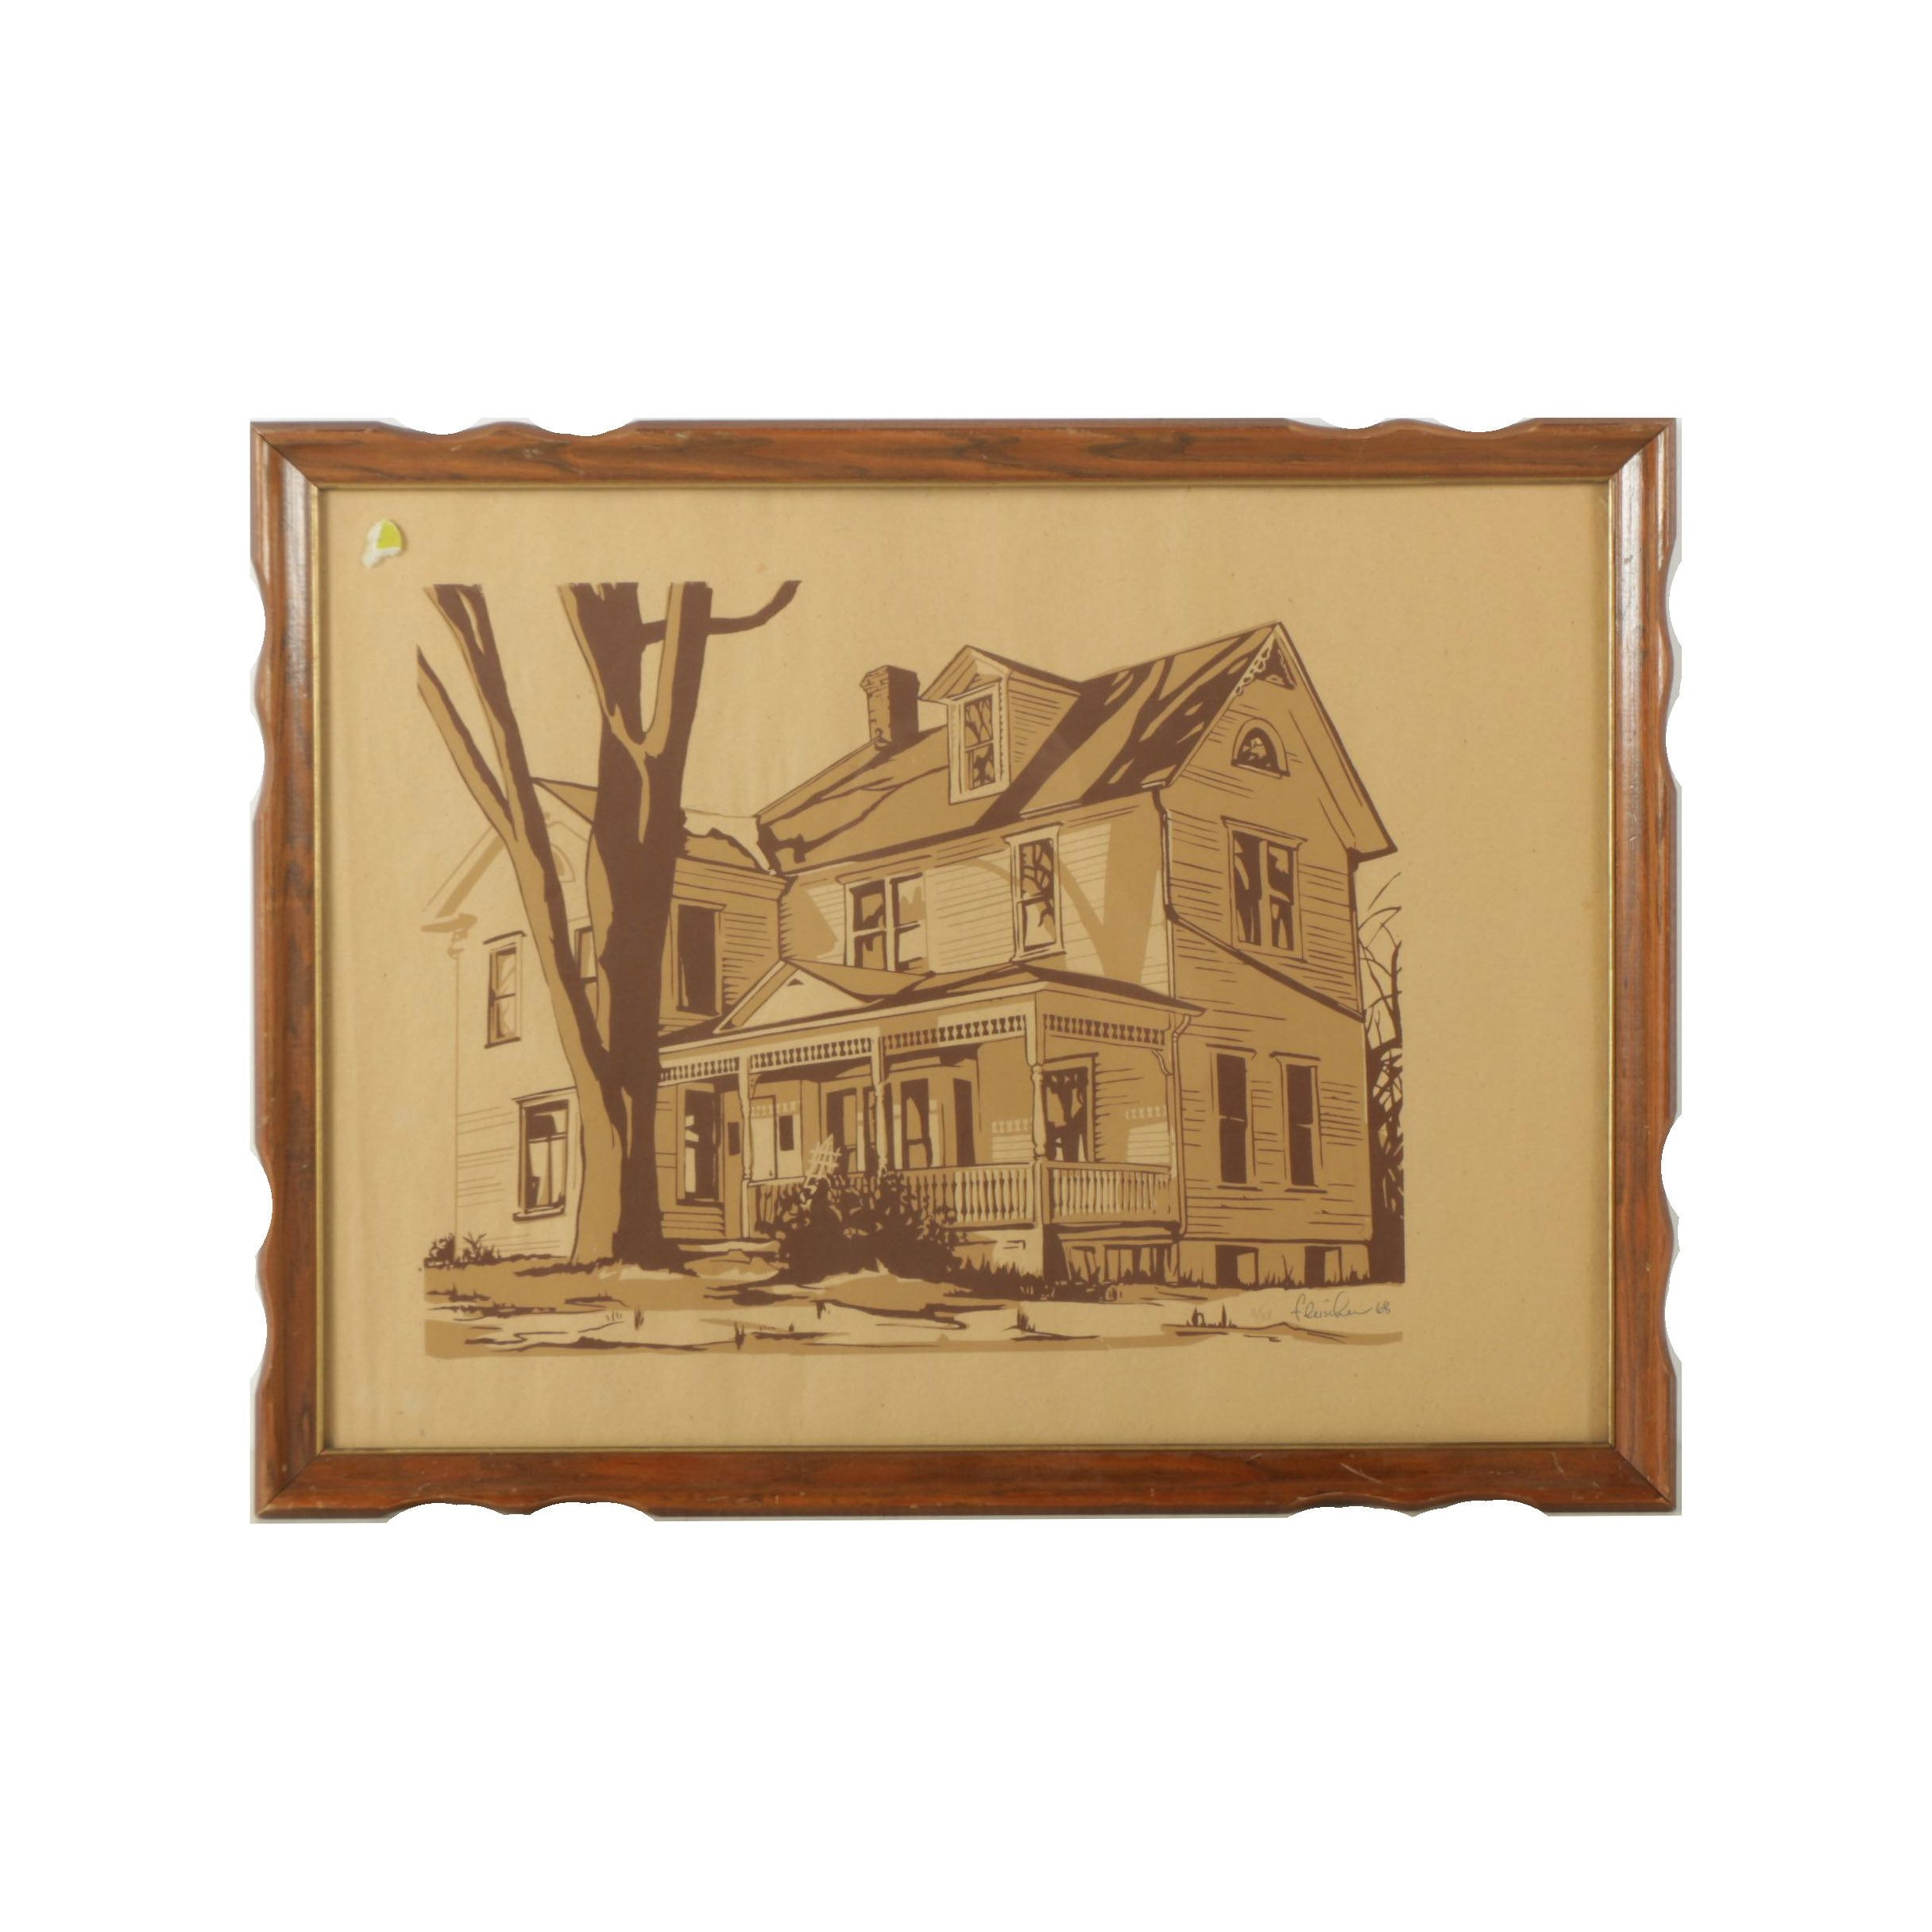 Fleischer Limited Edition Serigraph on Paper of a House